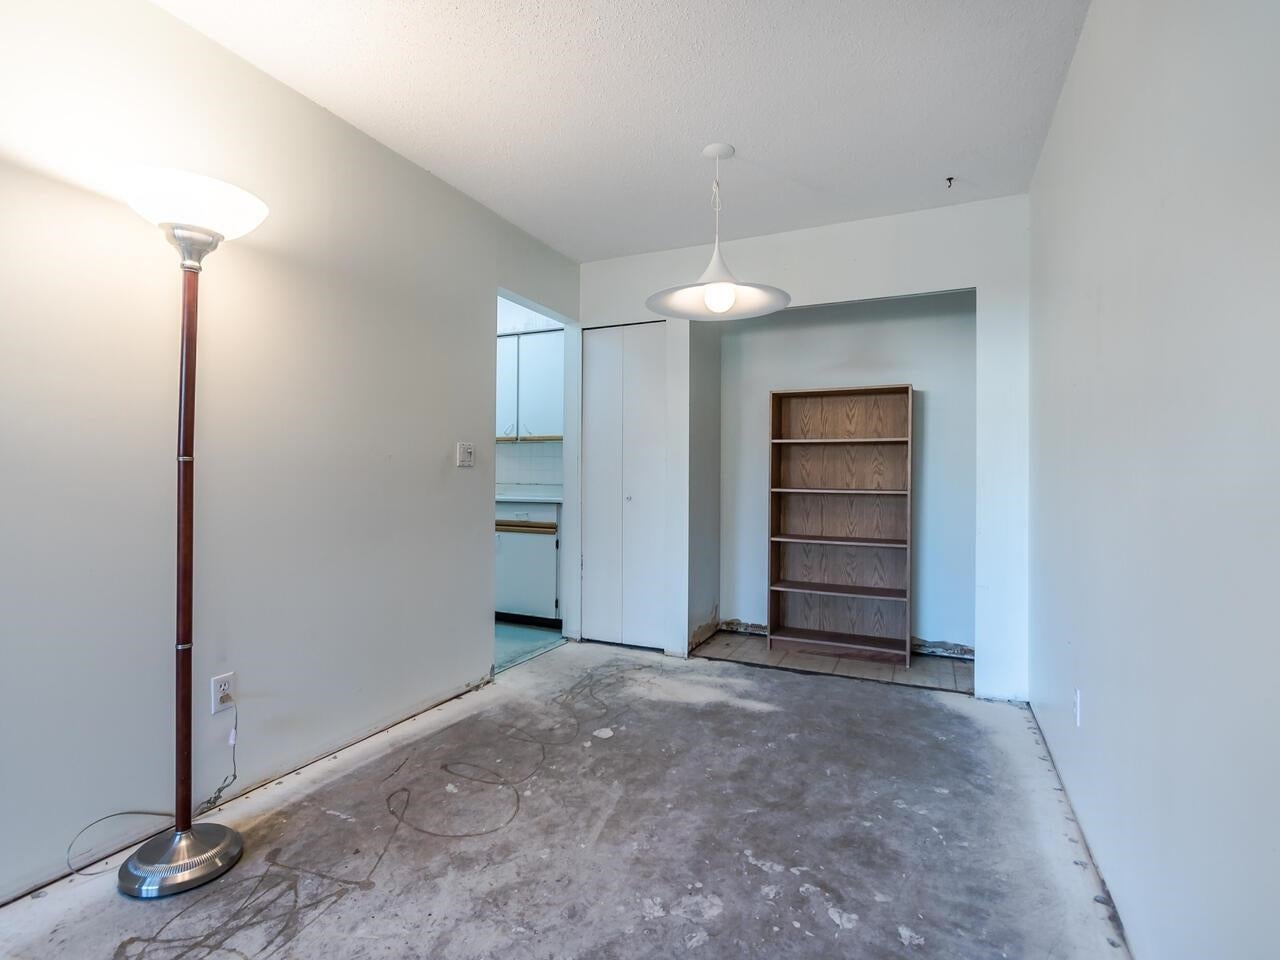 107 5191 203 STREET - Langley City Apartment/Condo for sale, 2 Bedrooms (R2625712) - #9